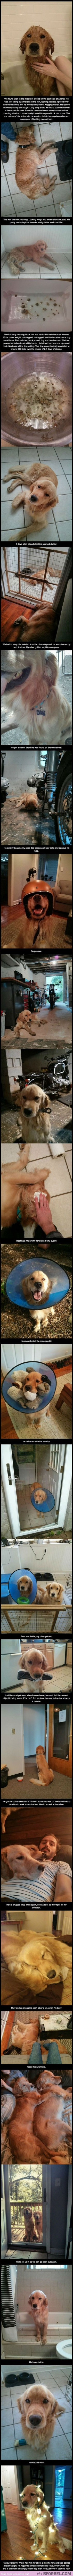 Nursing A Homeless Golden Retriever Puppy Back To Health… That Bowl Of Ticks Made Me Itchy All Over.